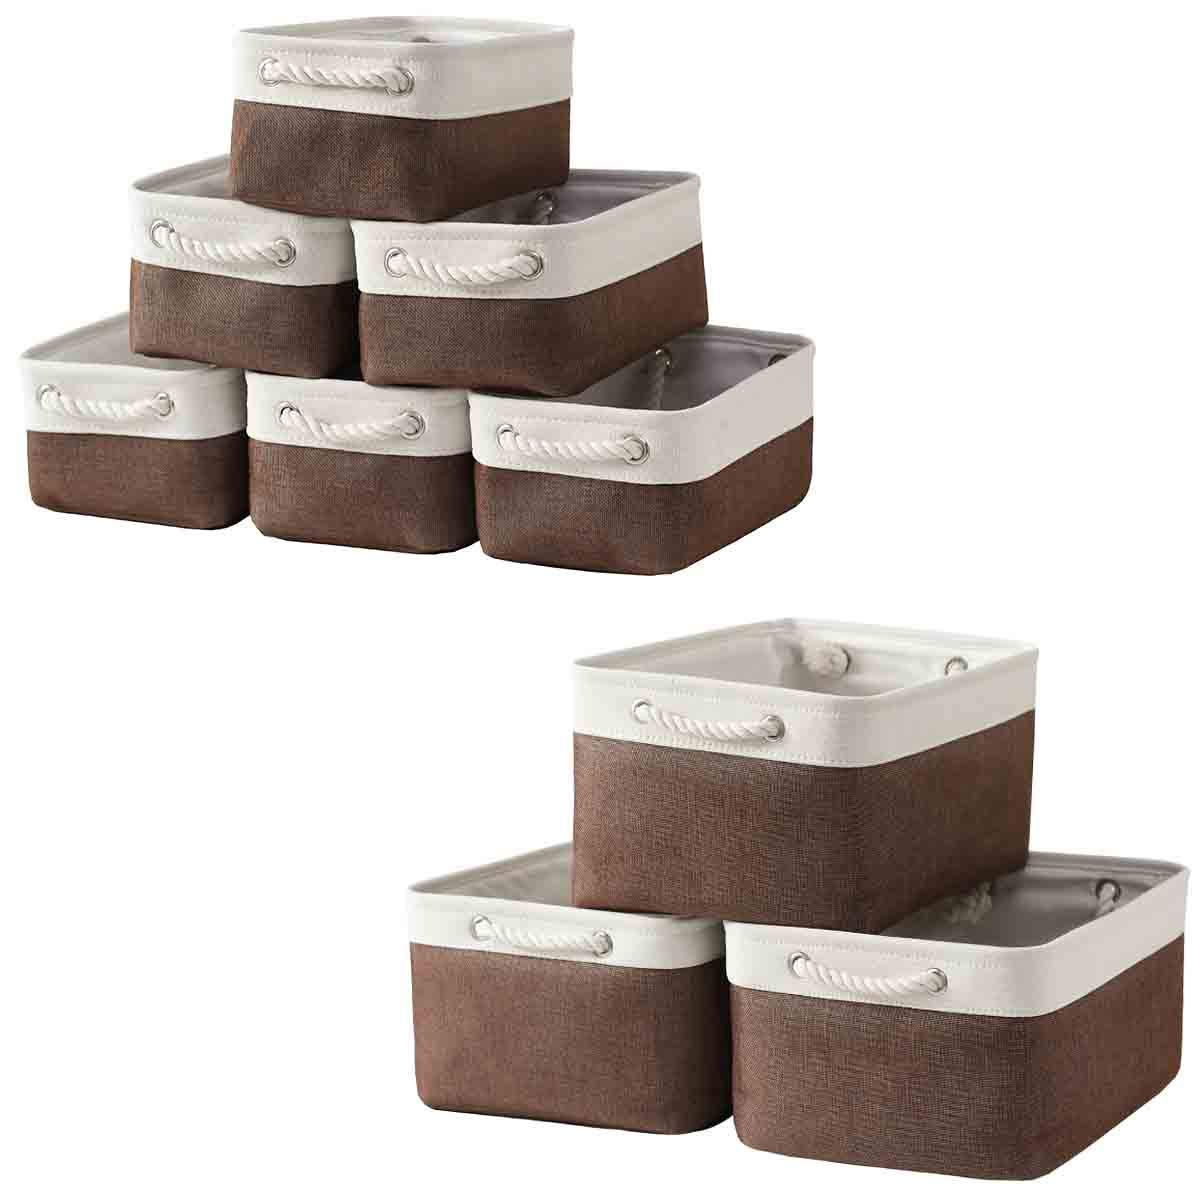 Sacyic Storage Baskets for Shelves, Fabric Baskets for Organizing, Collapsible Storage Bins for Closet, Nursery, Clothes, Toys, Home & Office [9-Pack, White&Brown]